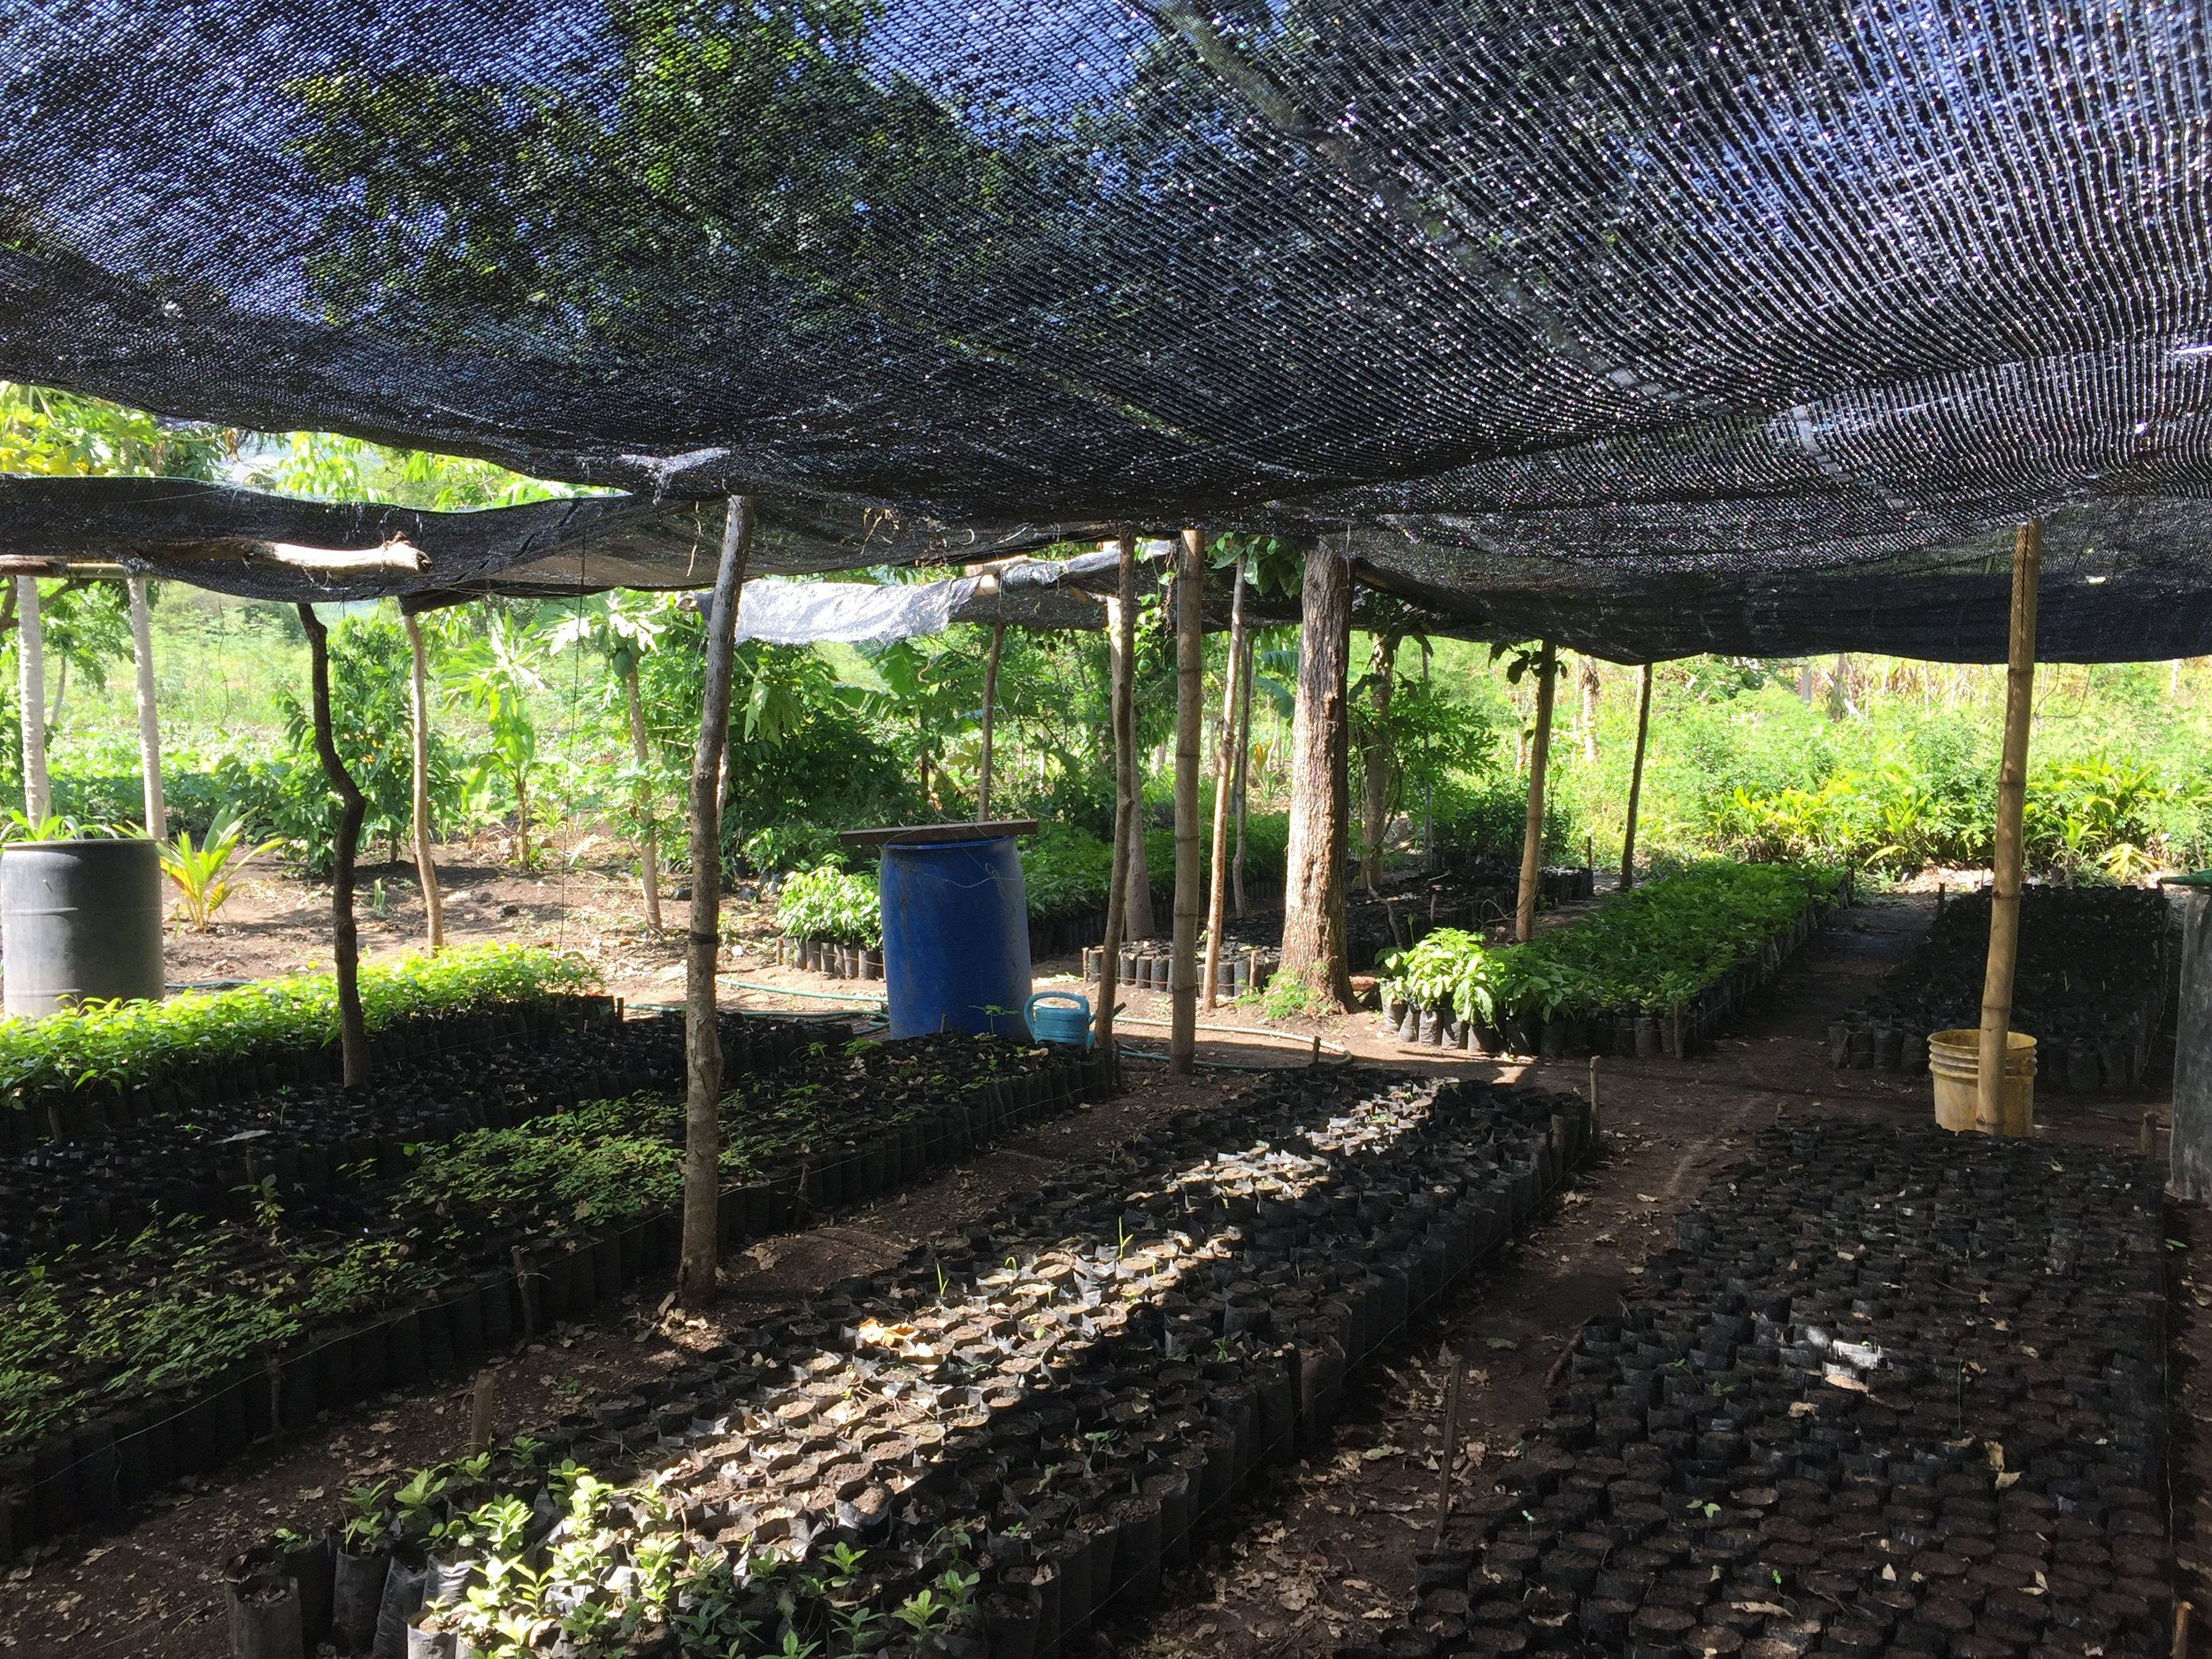 Plant nursery at the PDL facility, which supports local farmer cooperatives.